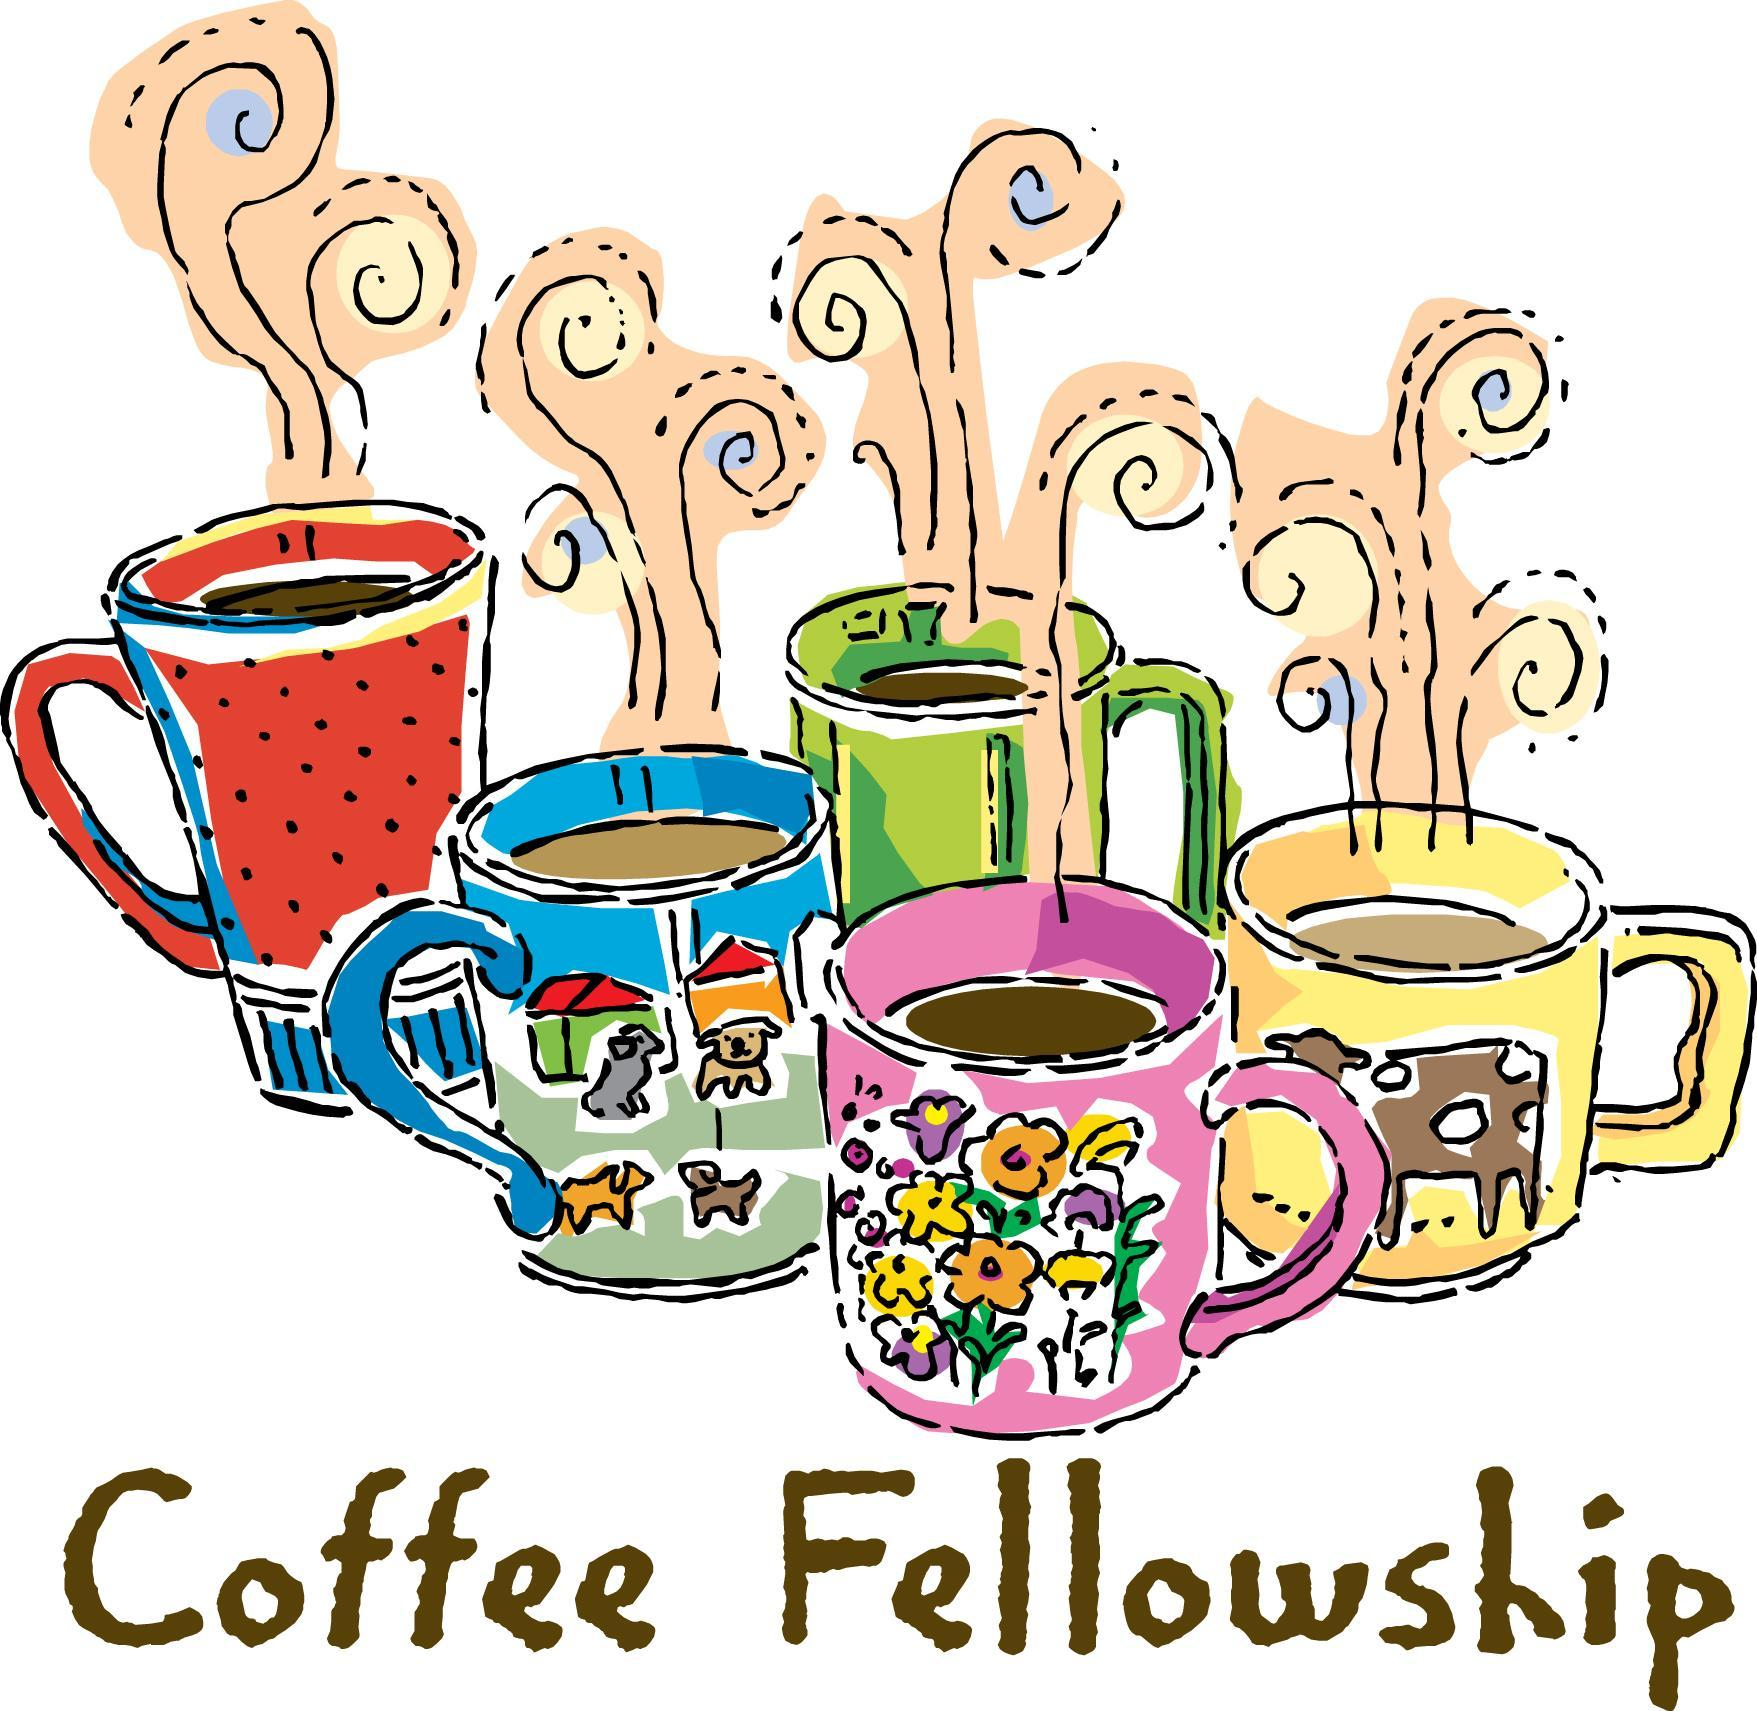 Church Coffee Fellowship Clip Art image in Vector cliparts category.